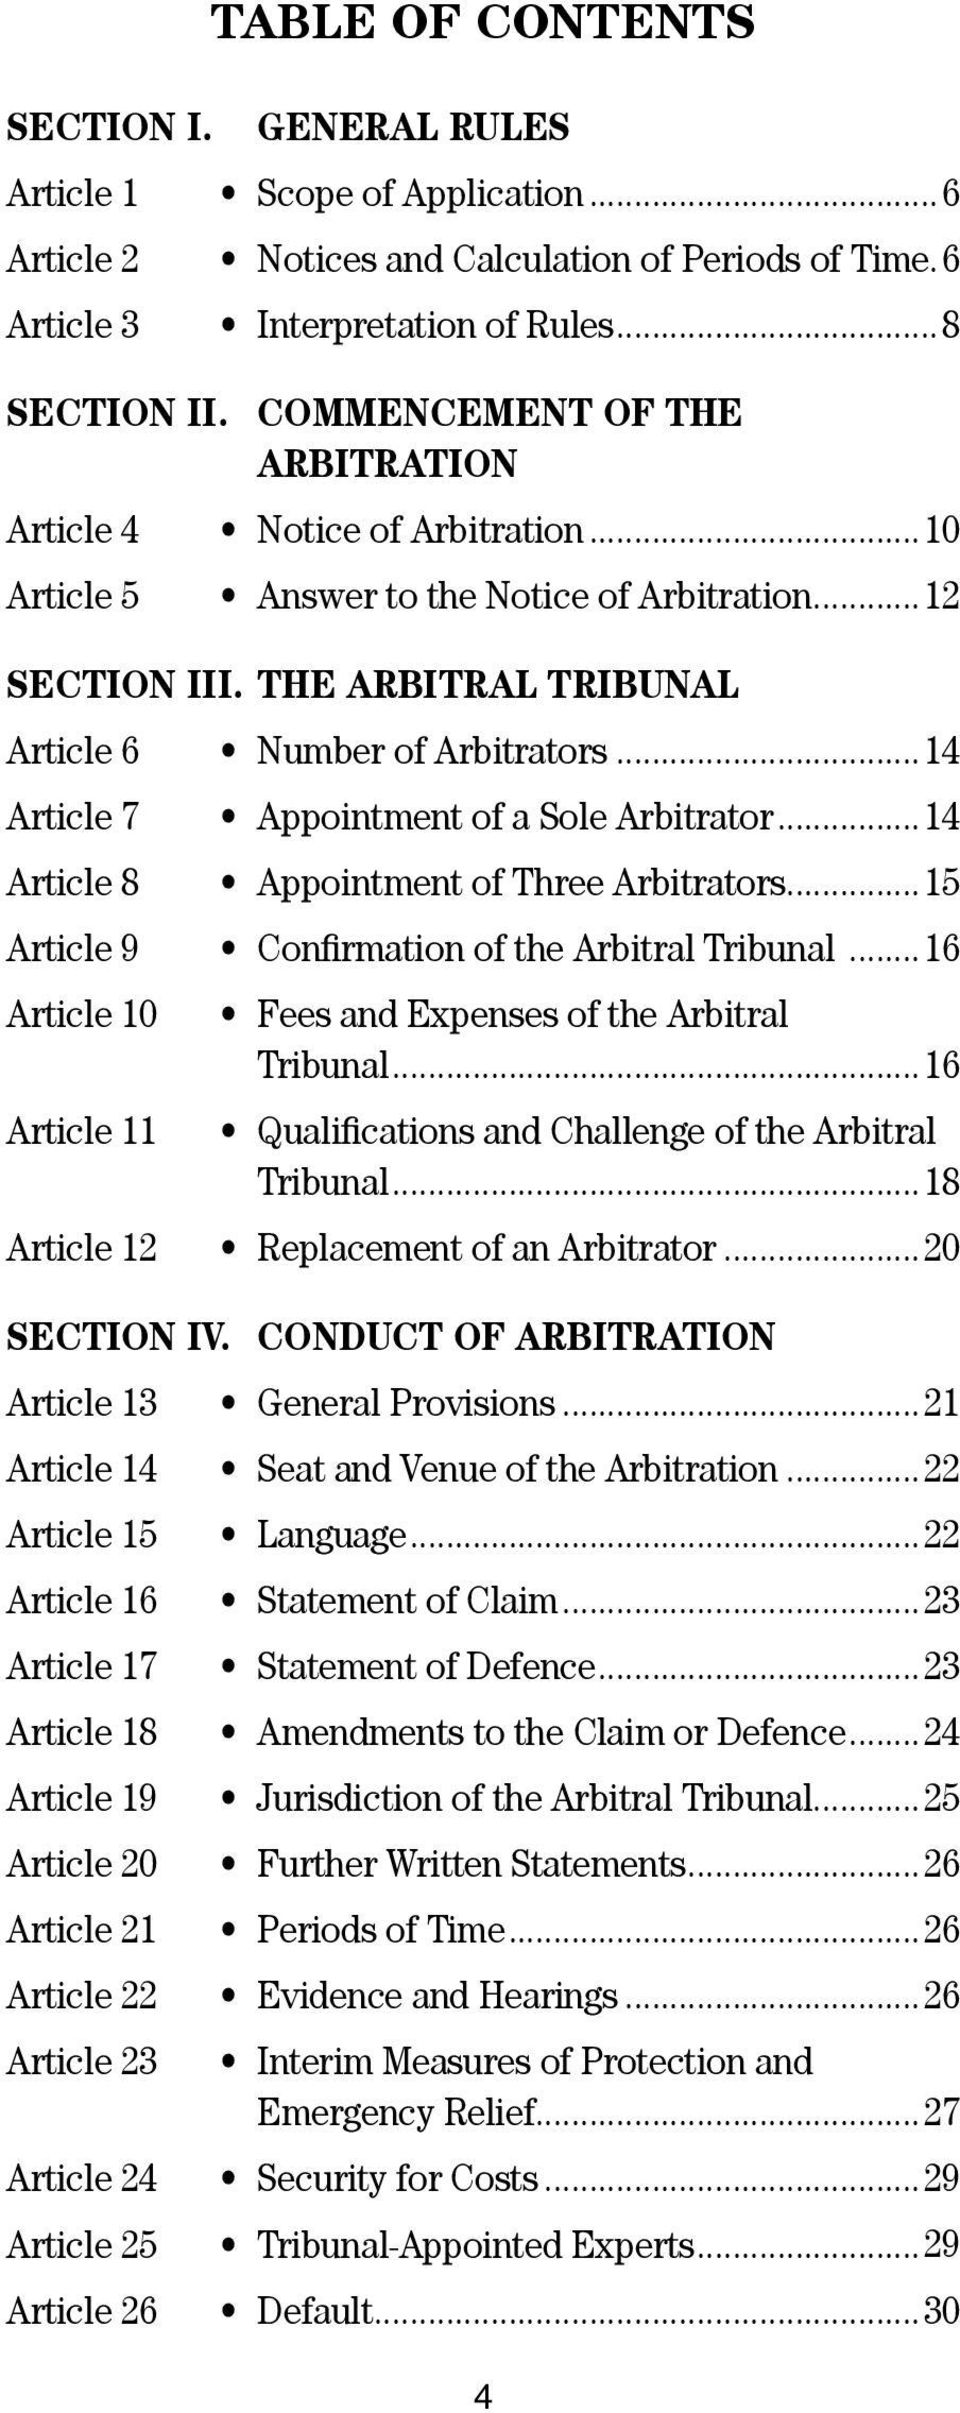 THE ARBITRAL TRIBUNAL Article 6 Article 7 Article 8 Number of Arbitrators...14 Appointment of a Sole Arbitrator...14 Appointment of Three Arbitrators.